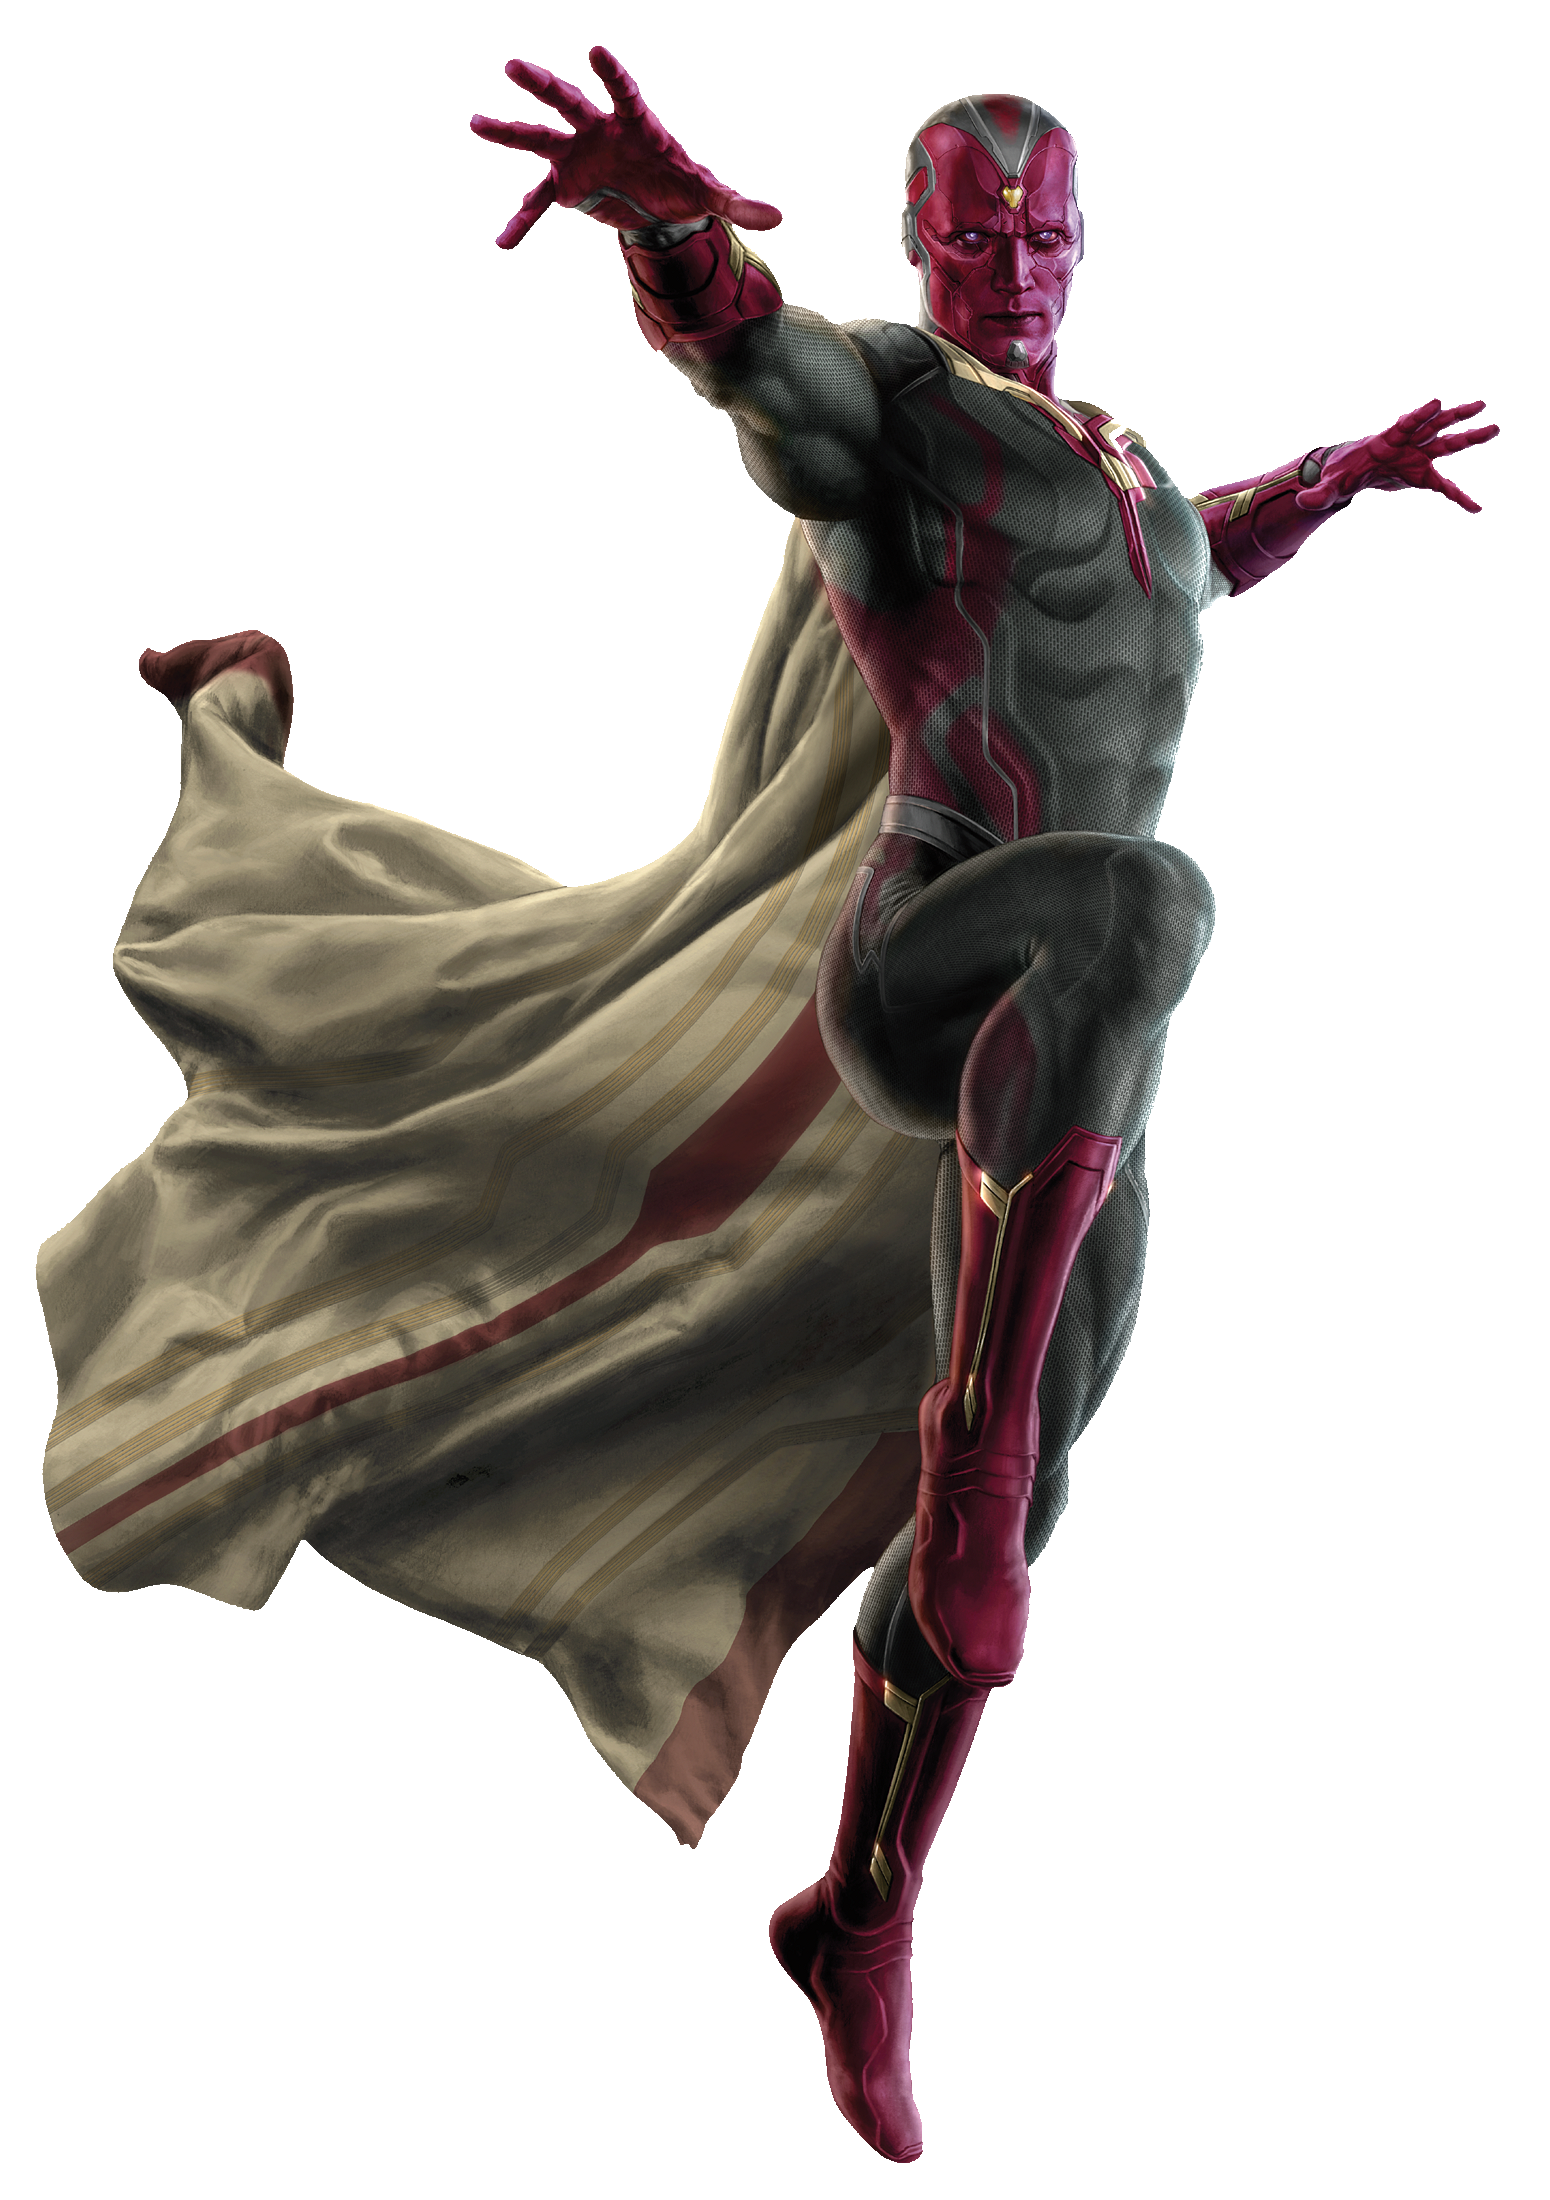 The Avengers Age of Ultron The Vision Promo Art